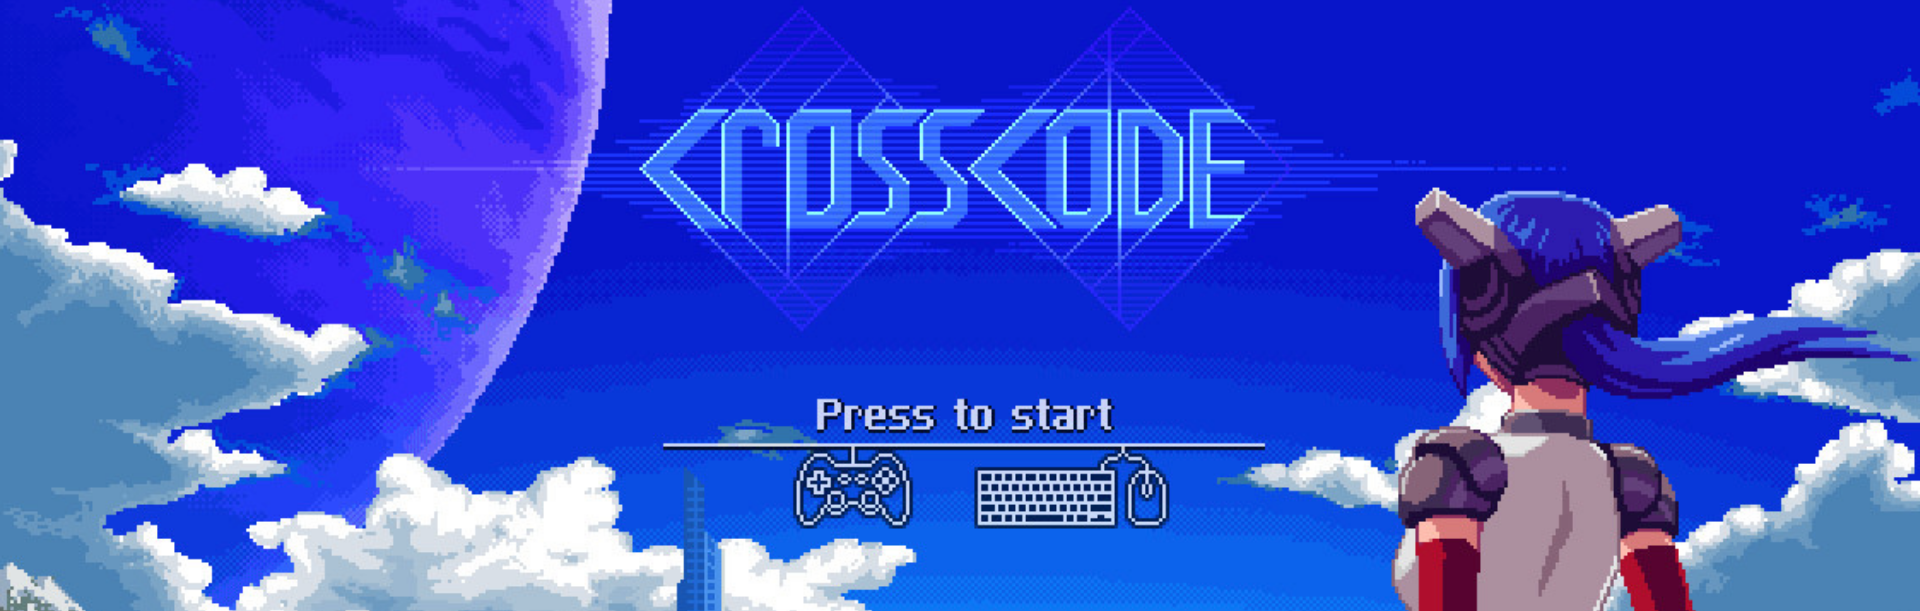 Cross Code Download